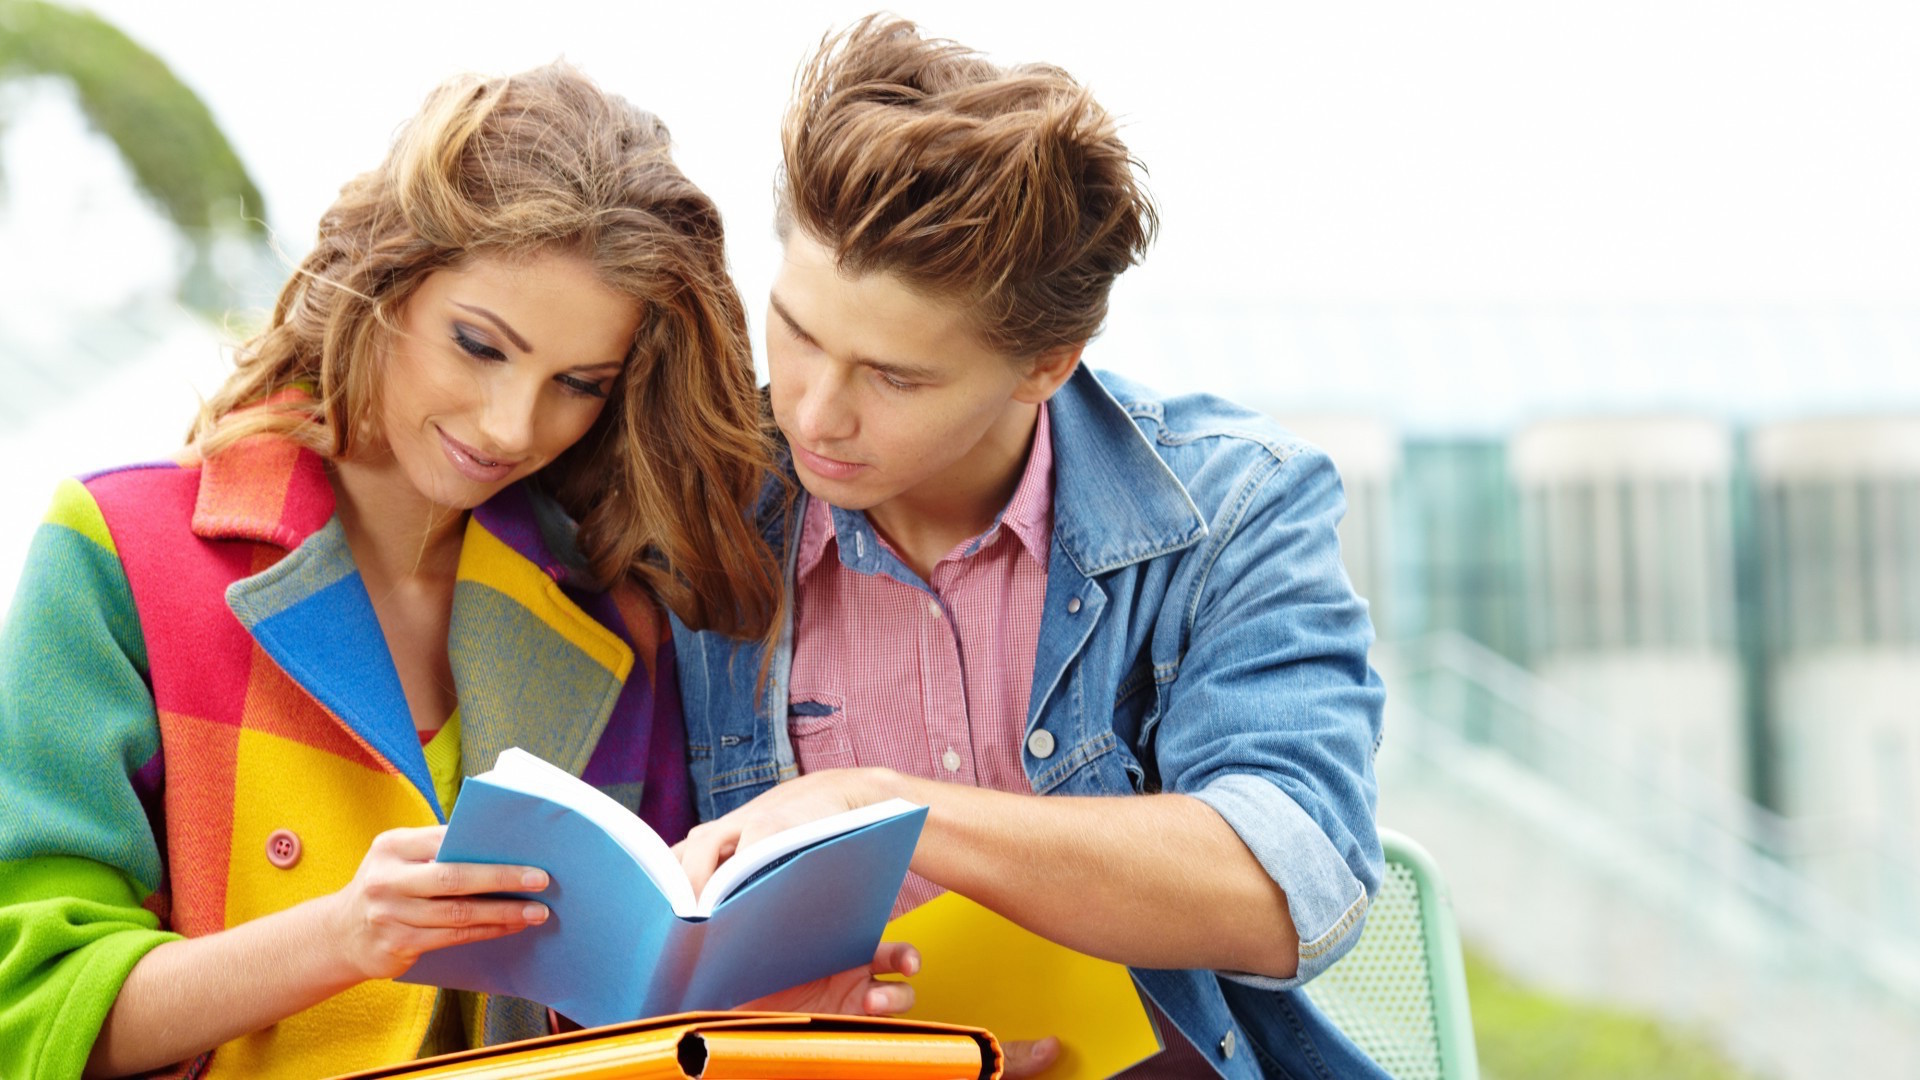 People_A_guy_and_a_girl_reading_a_book_097599_